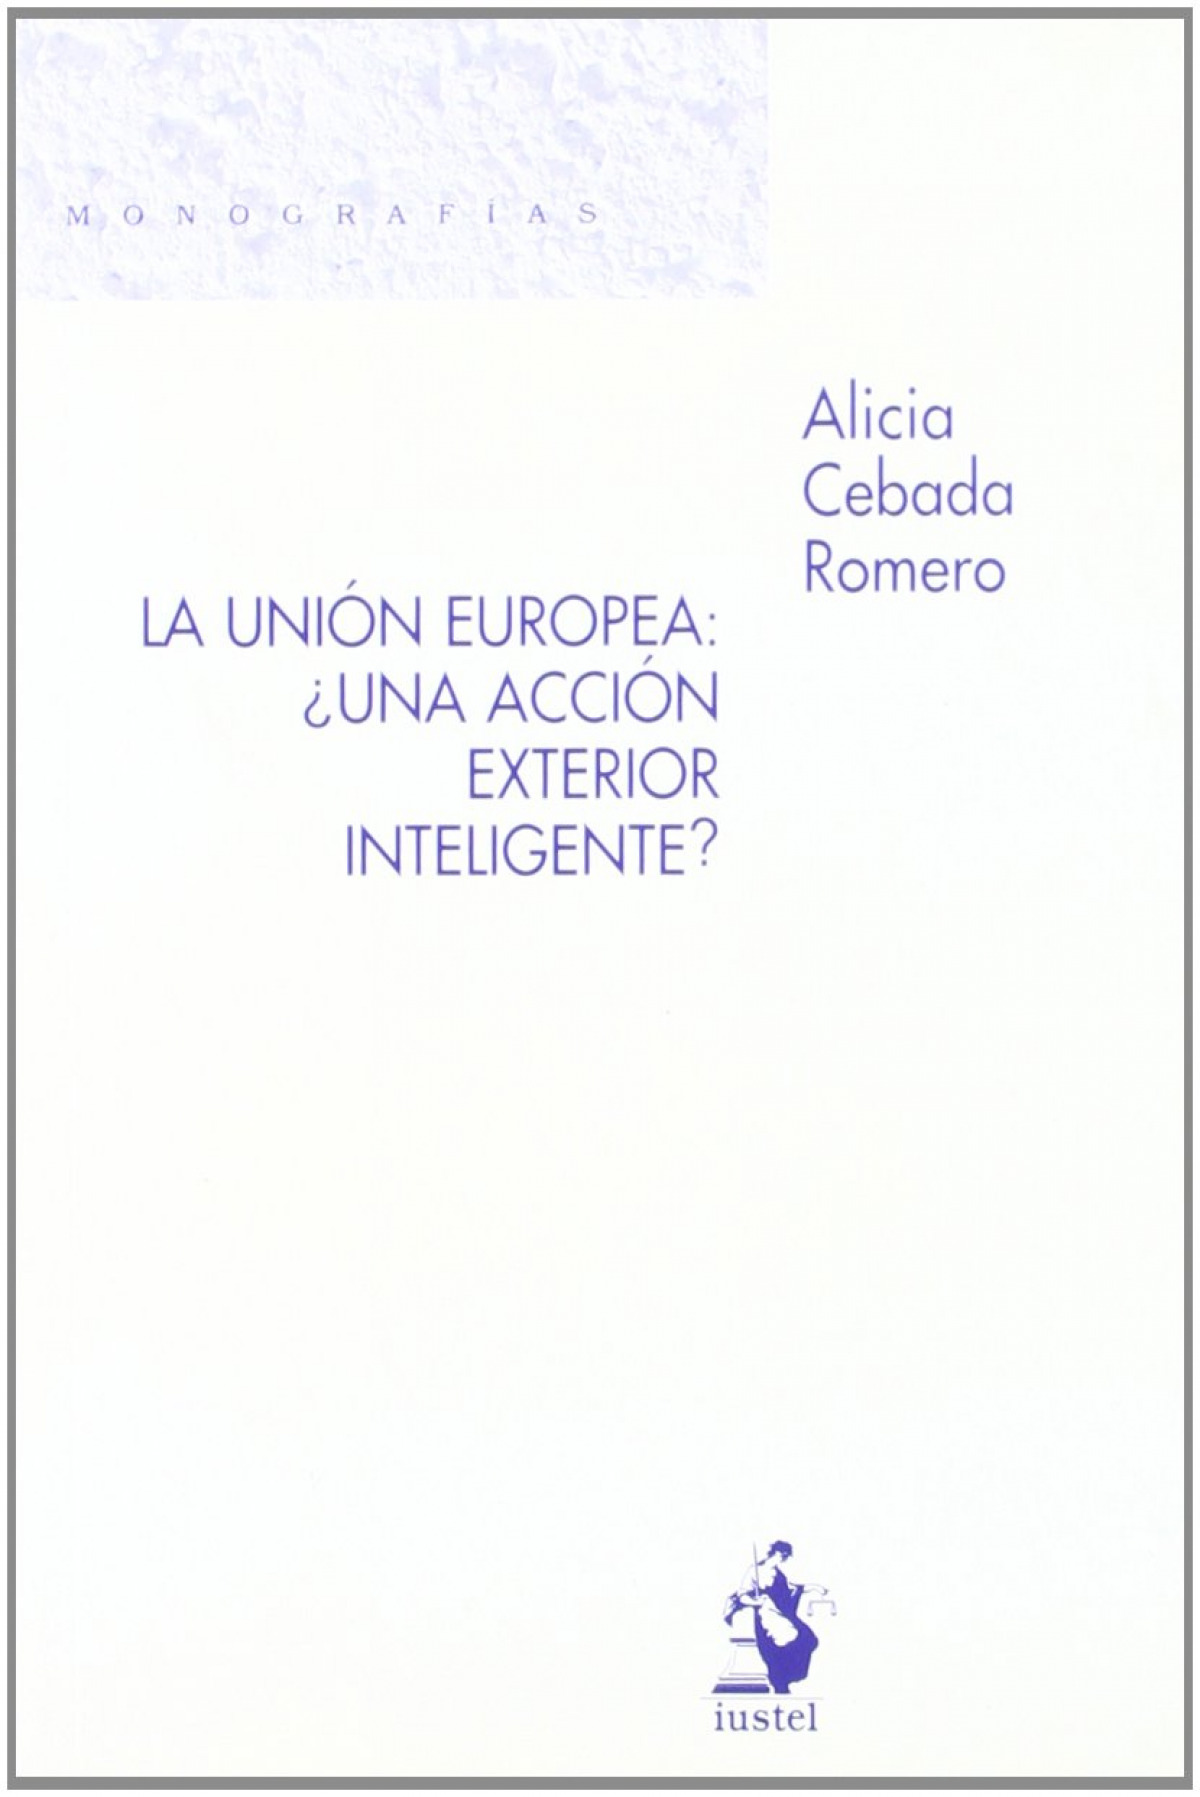 Union europea una accion exterior - Cabada, Alicia